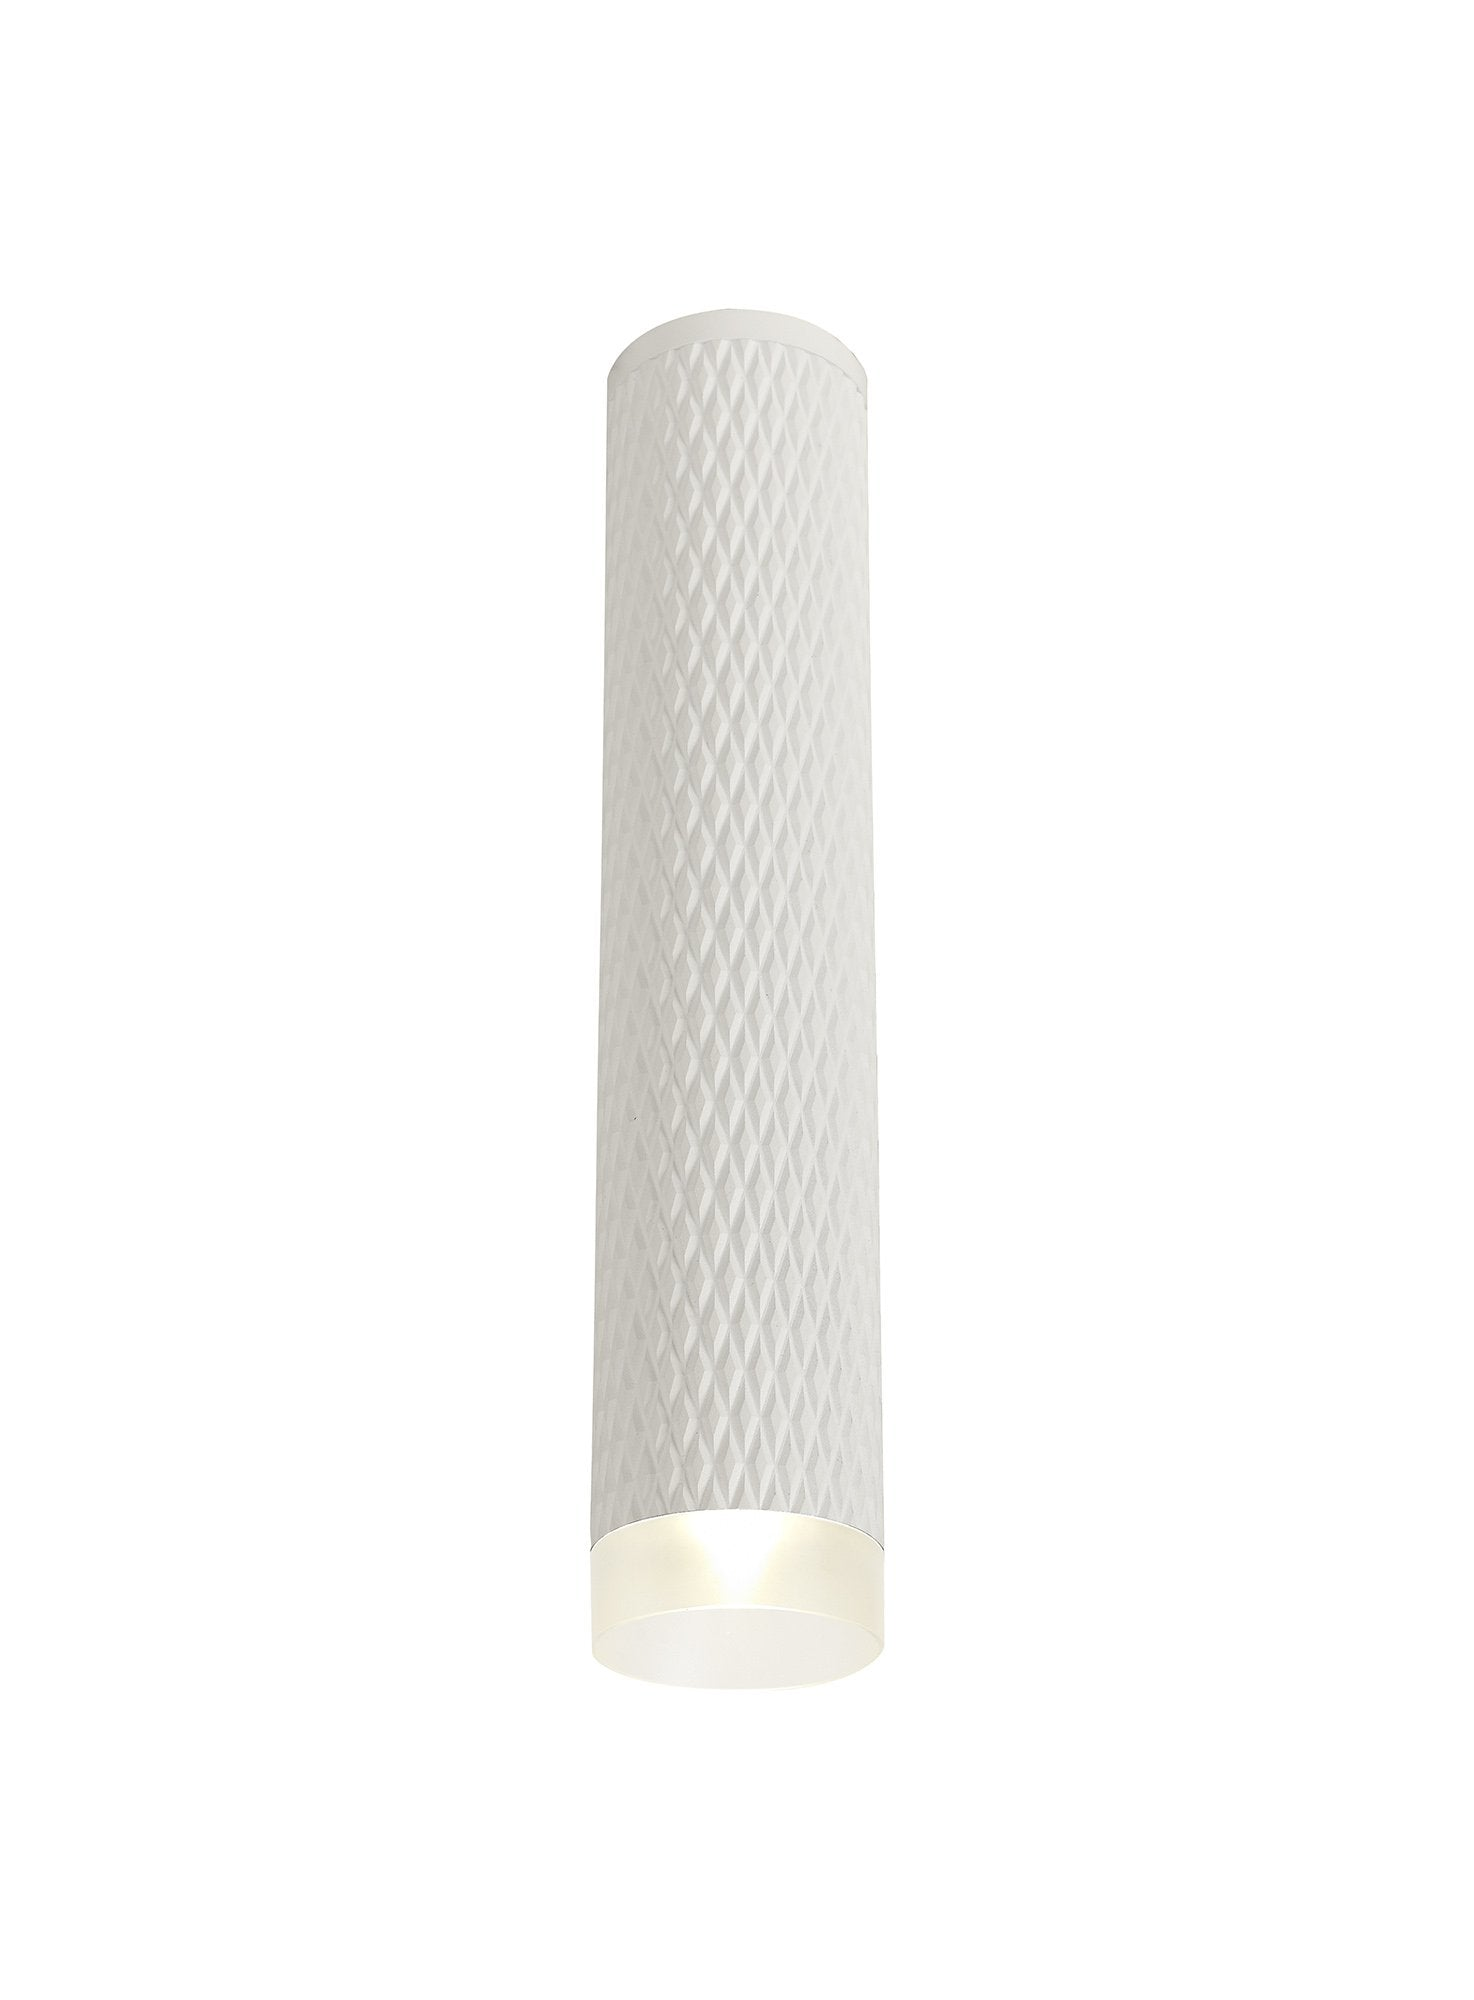 DELPH 1 Light 30cm Surface Mounted Ceiling GU10, Sand White/Acrylic Ring